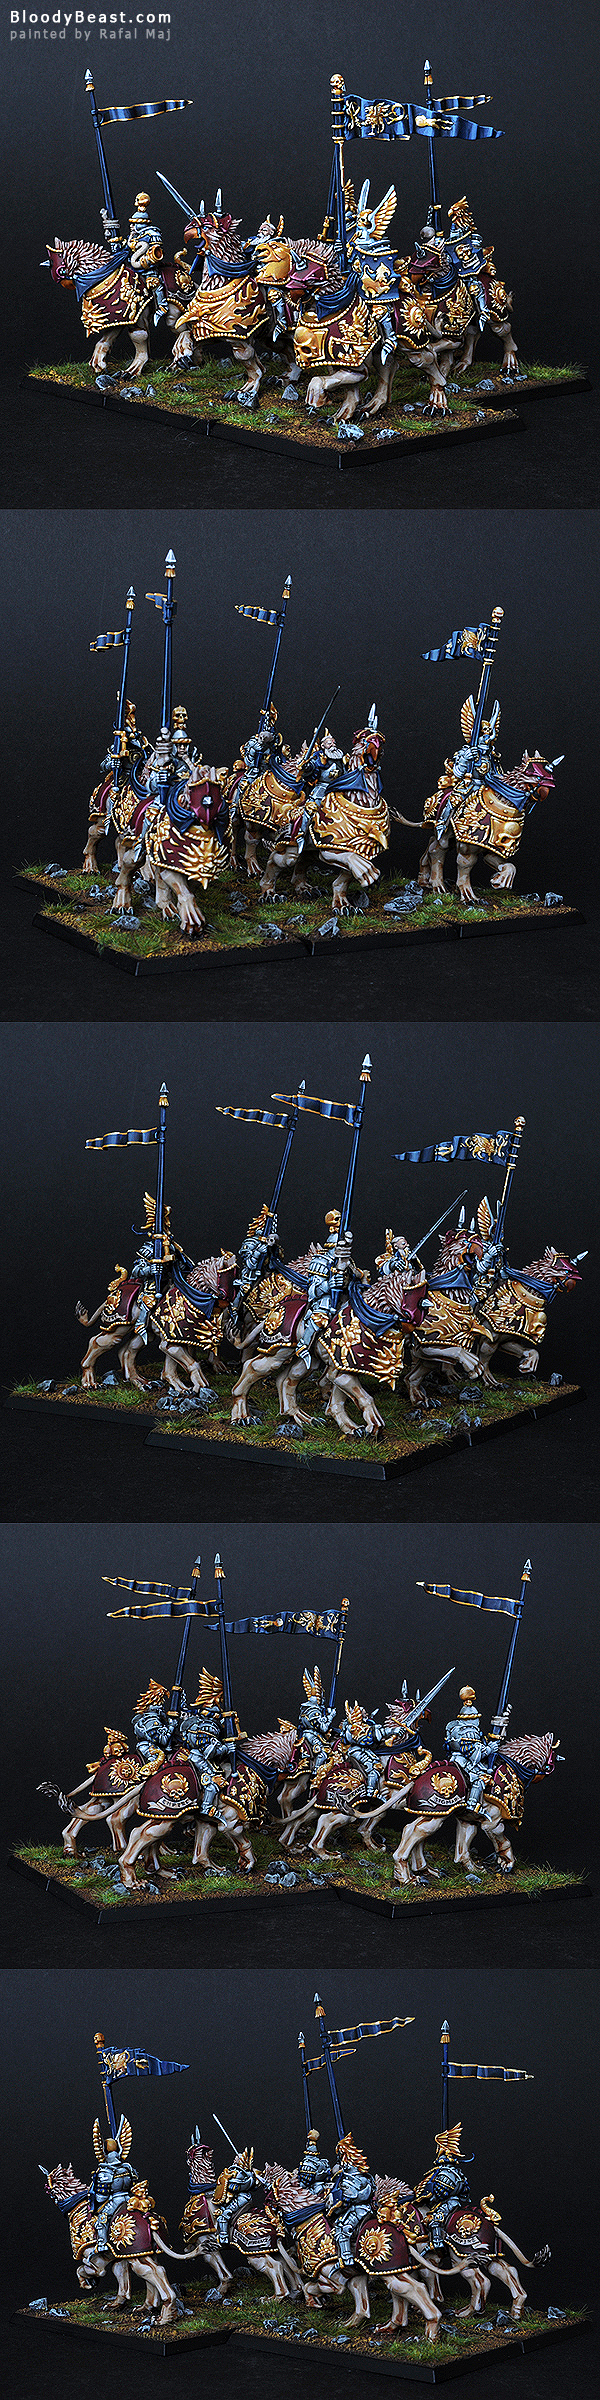 Empire Demigryph Knights painted by Rafal Maj (BloodyBeast.com)